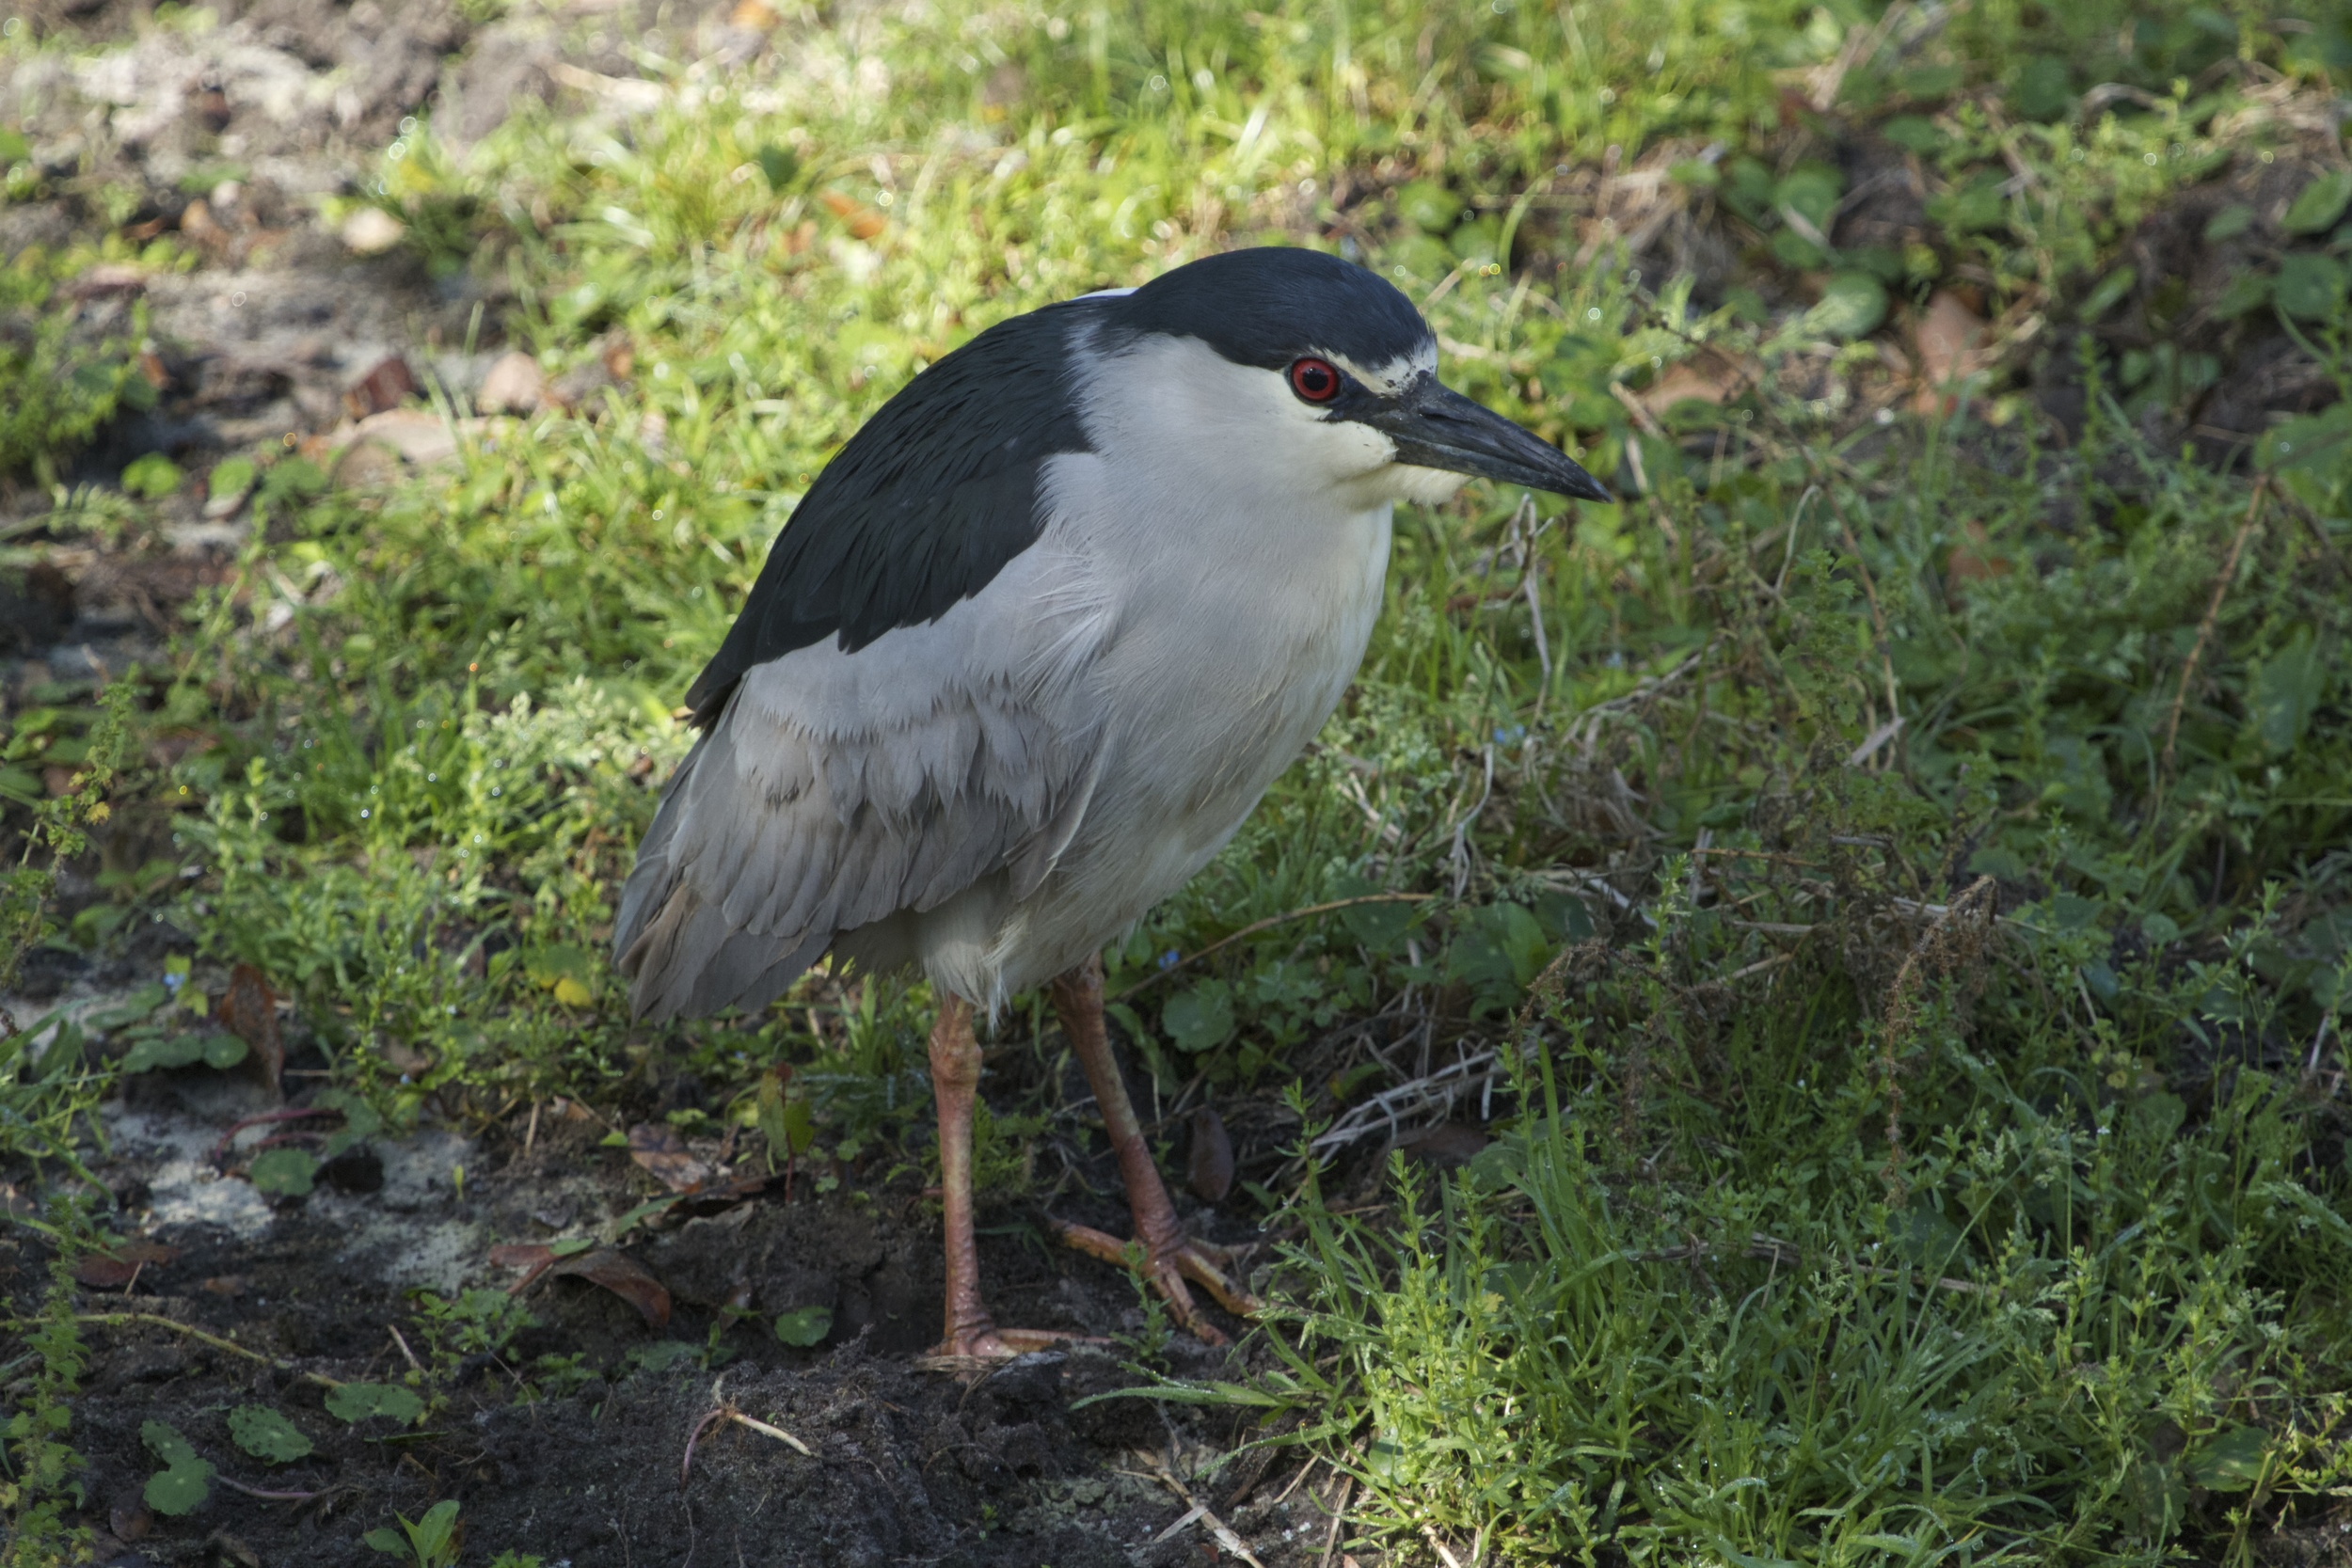 Mature adult Black-crowned Night-Heron.